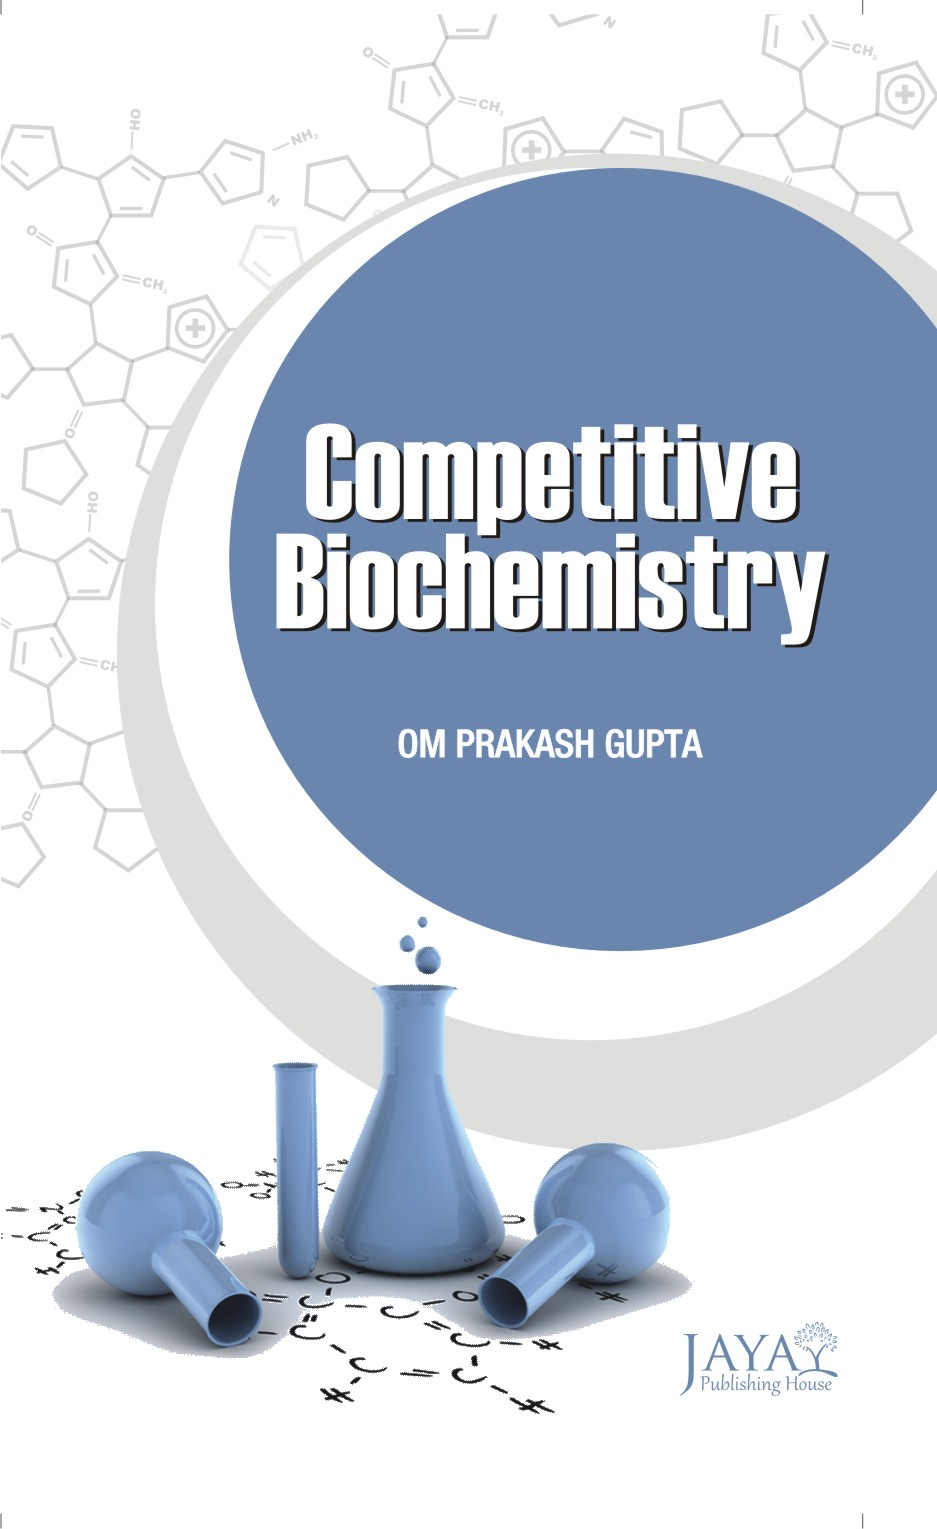 Competitive Biochemistry